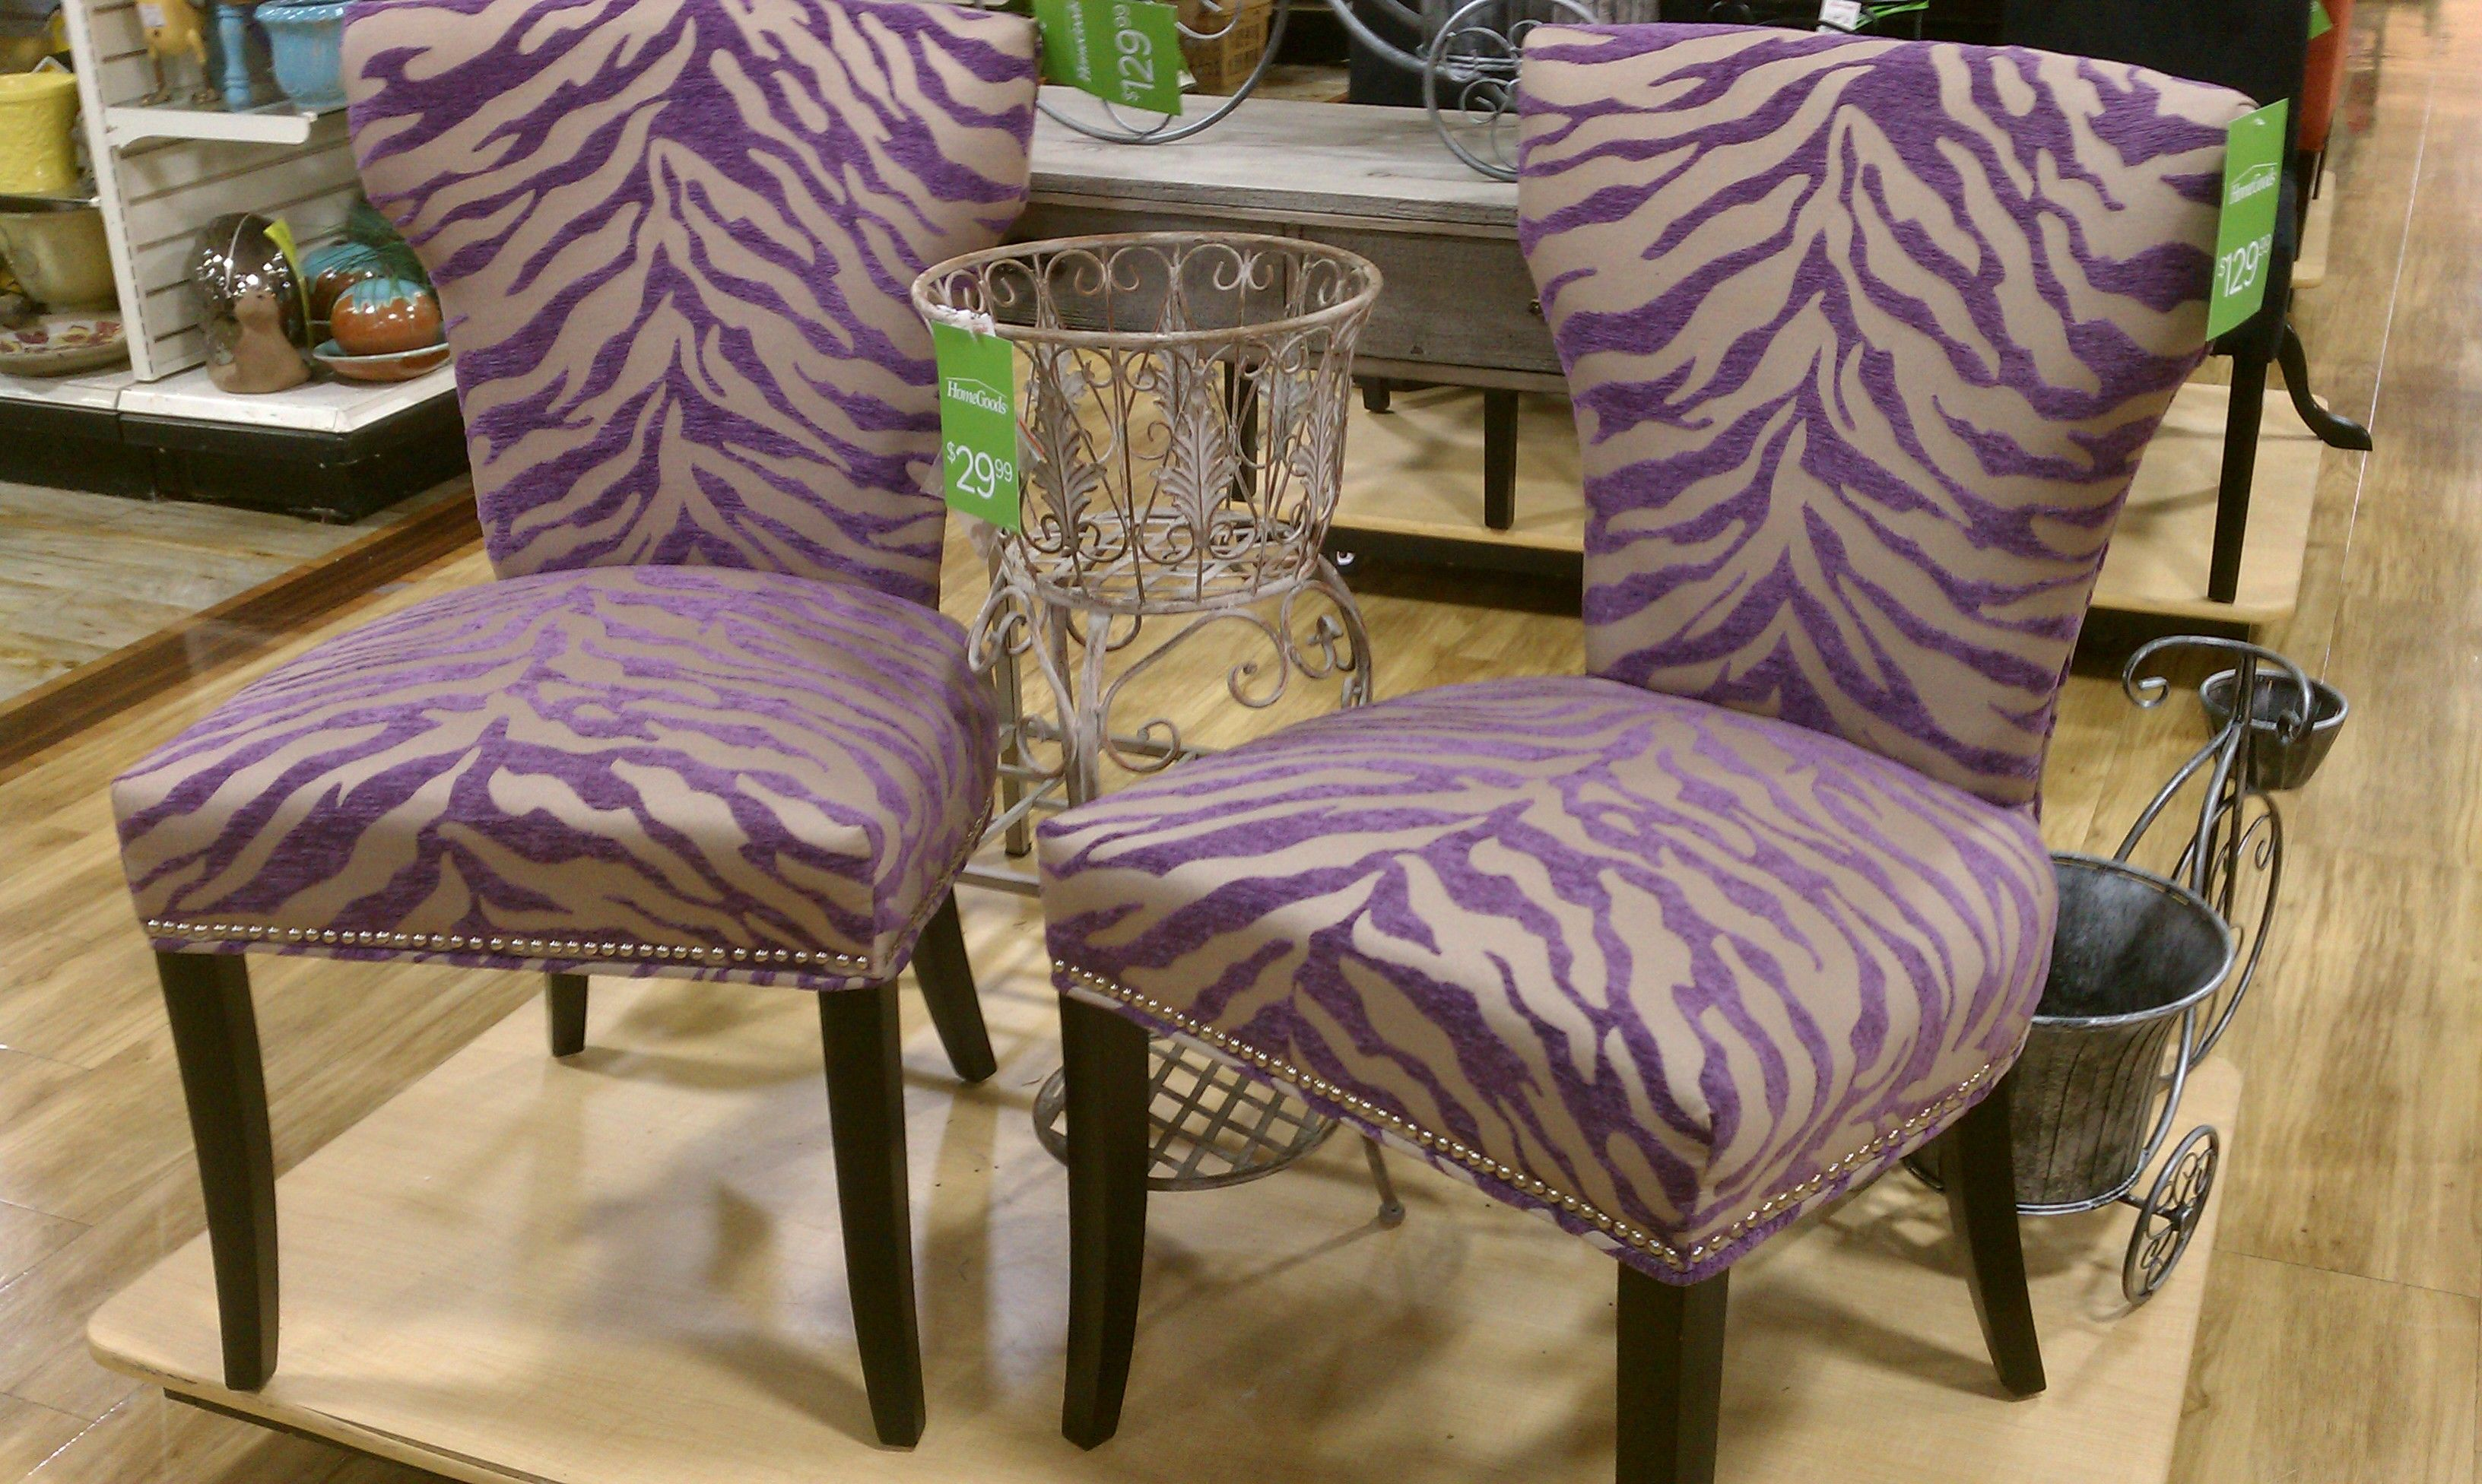 Zebra Print Chairs Home Goods Home D 233 Cor Funky Chairs